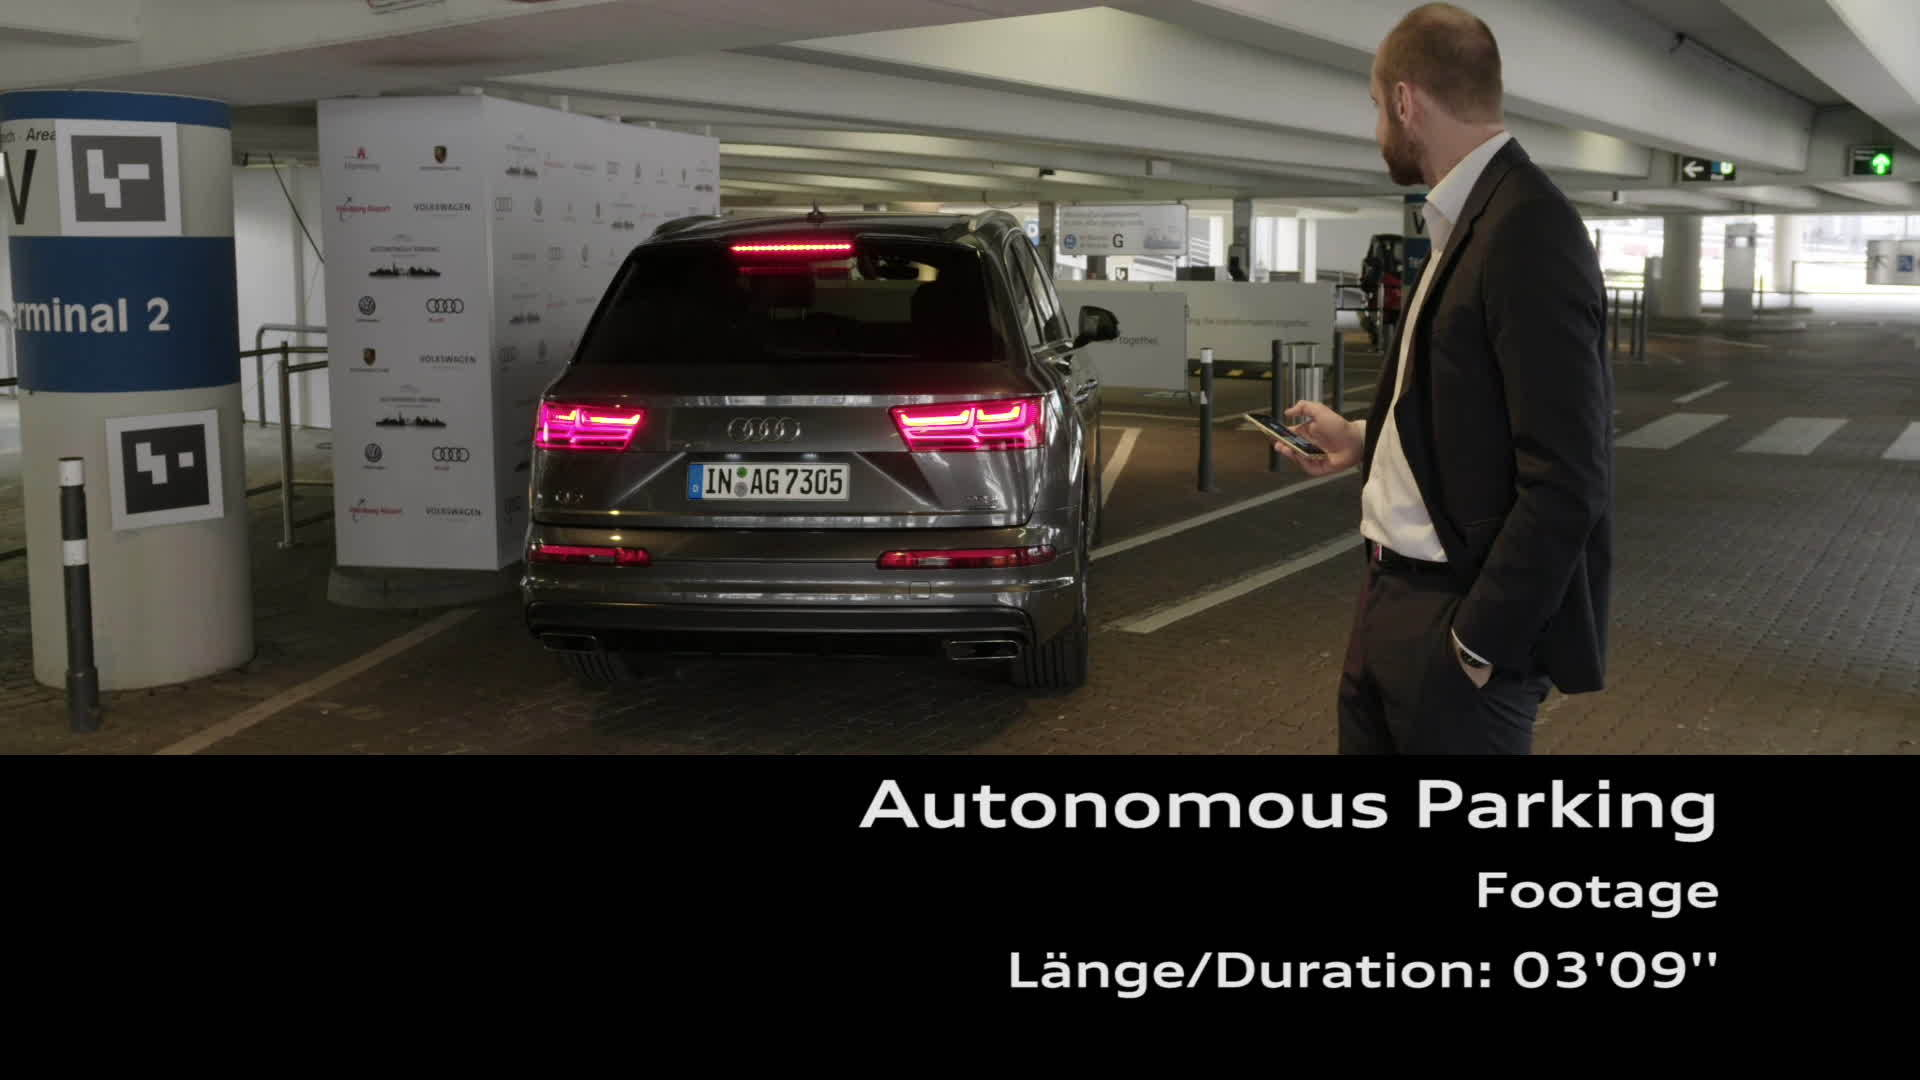 Footage Autonomous parking at Hamburg Airport